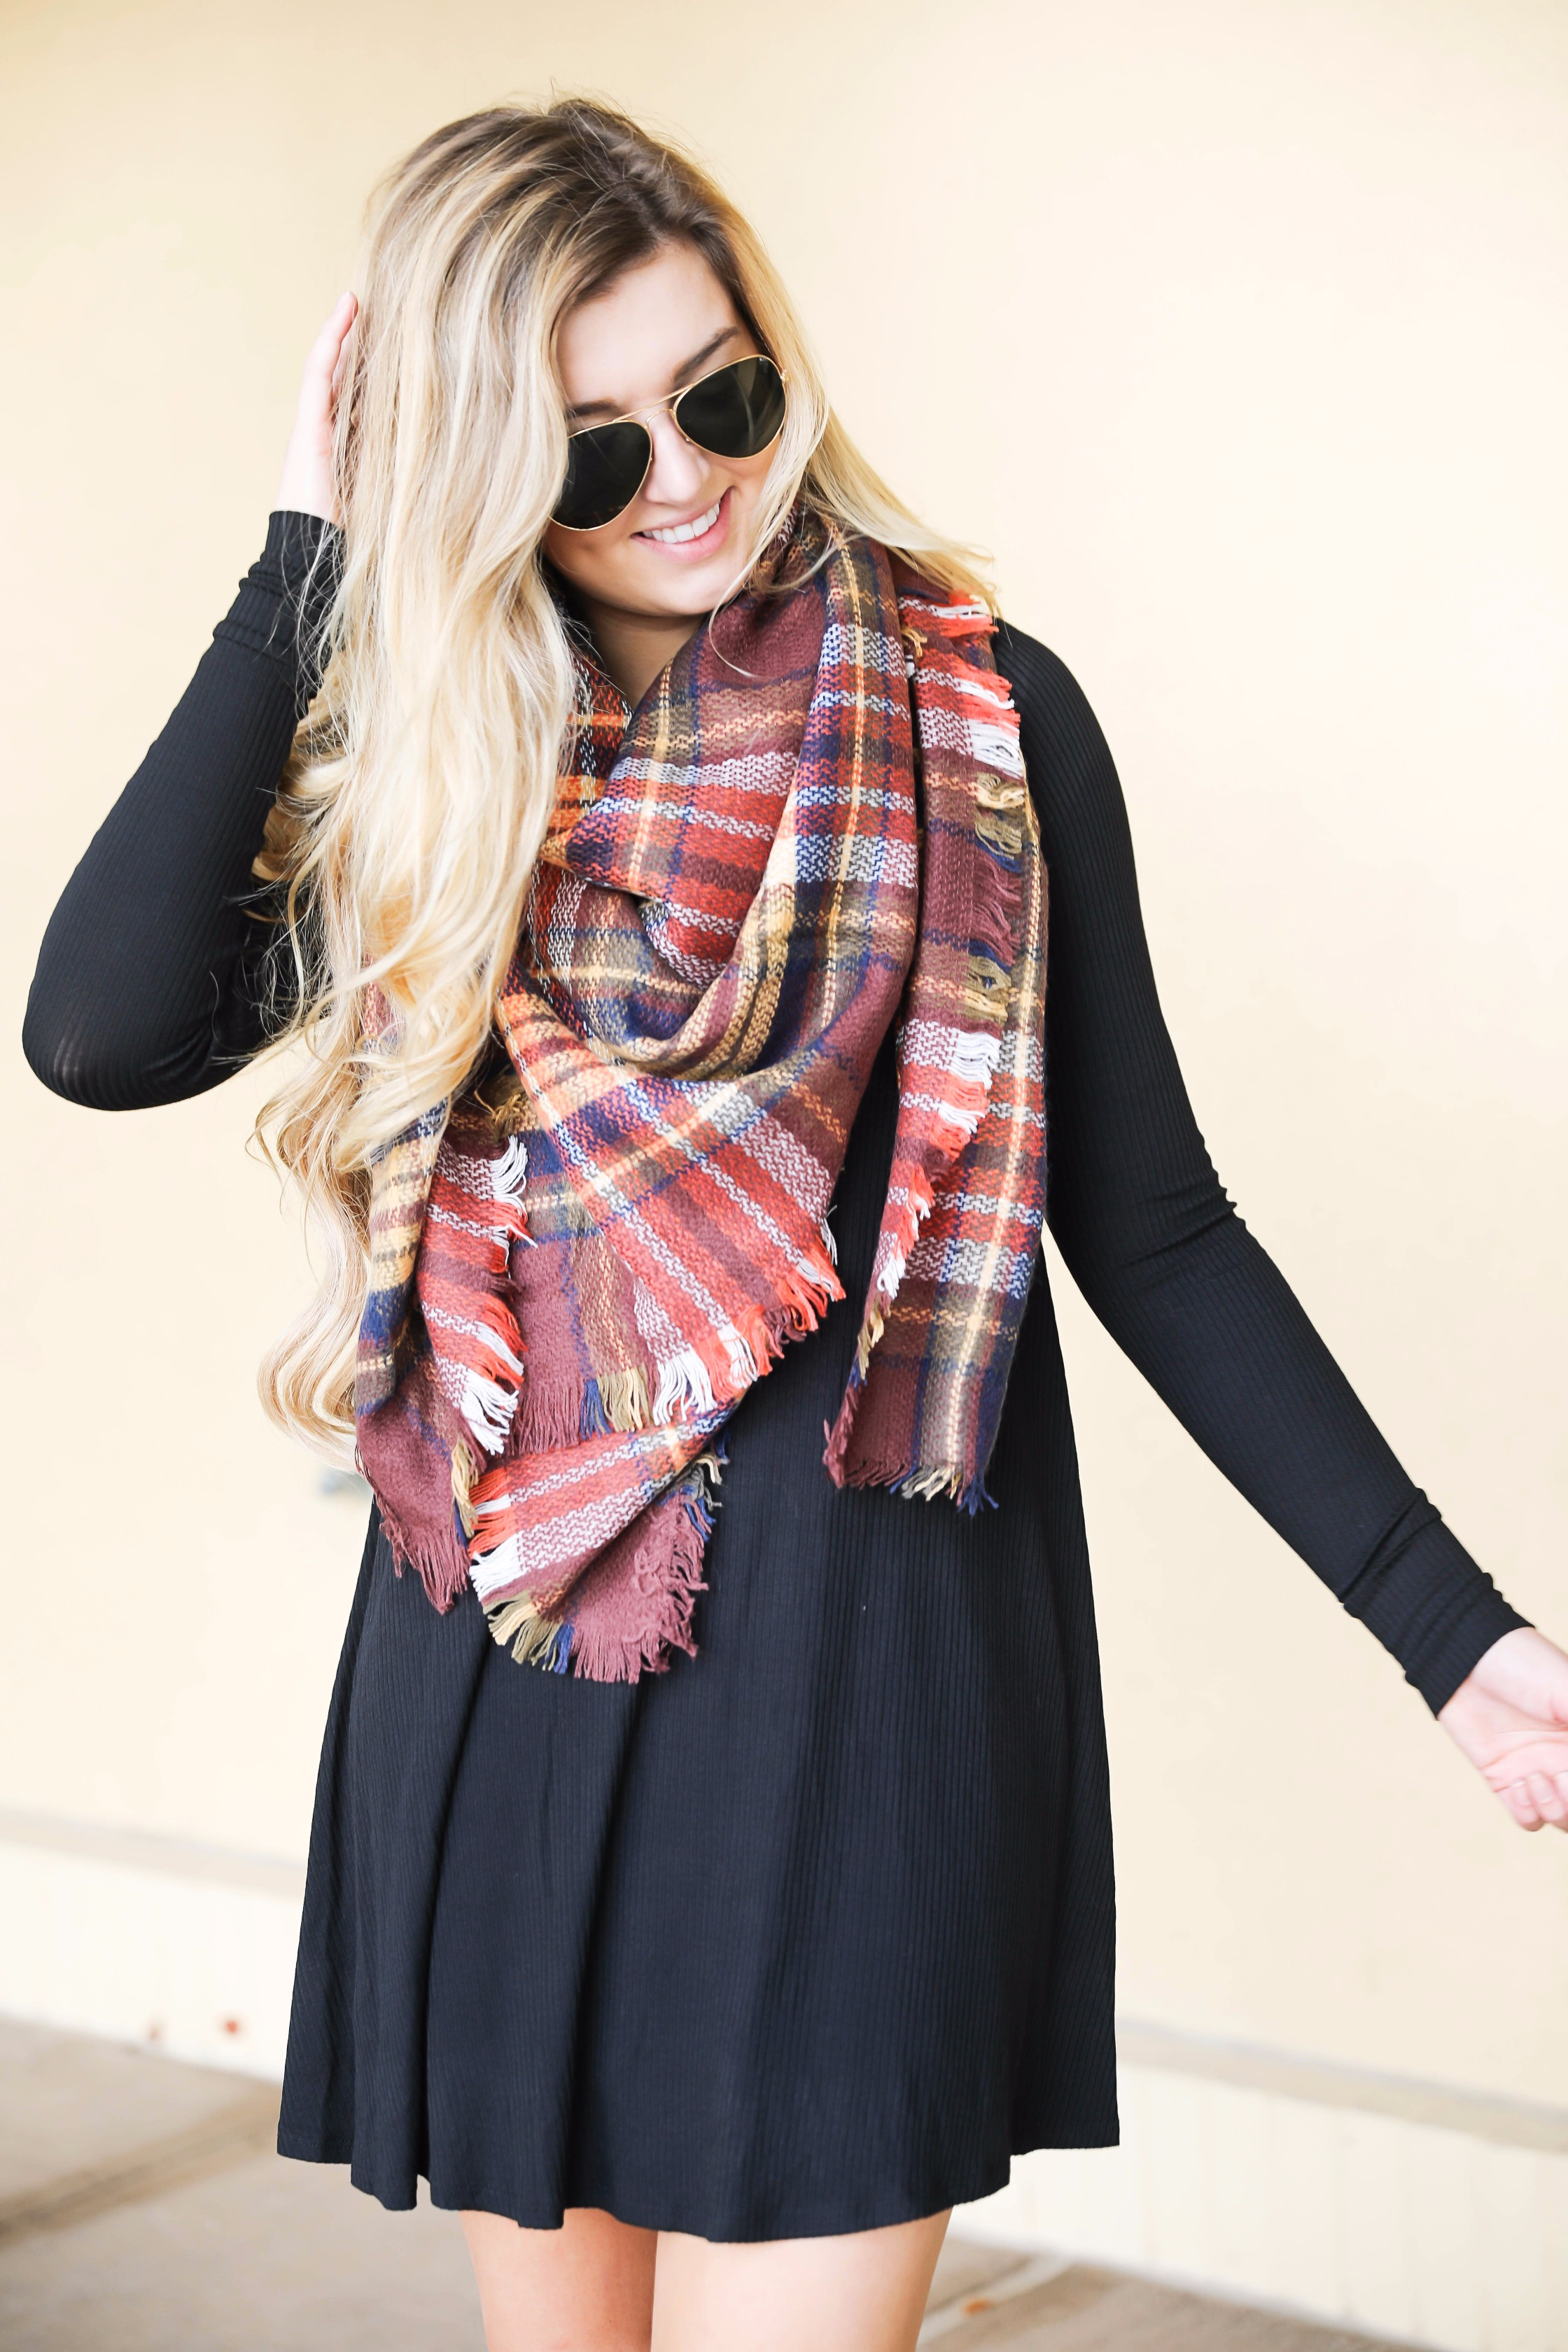 Plaid blanket scarf by ILY Mix paired with a cute black long sleeve dress and booties on fashion blog daily dose of charm